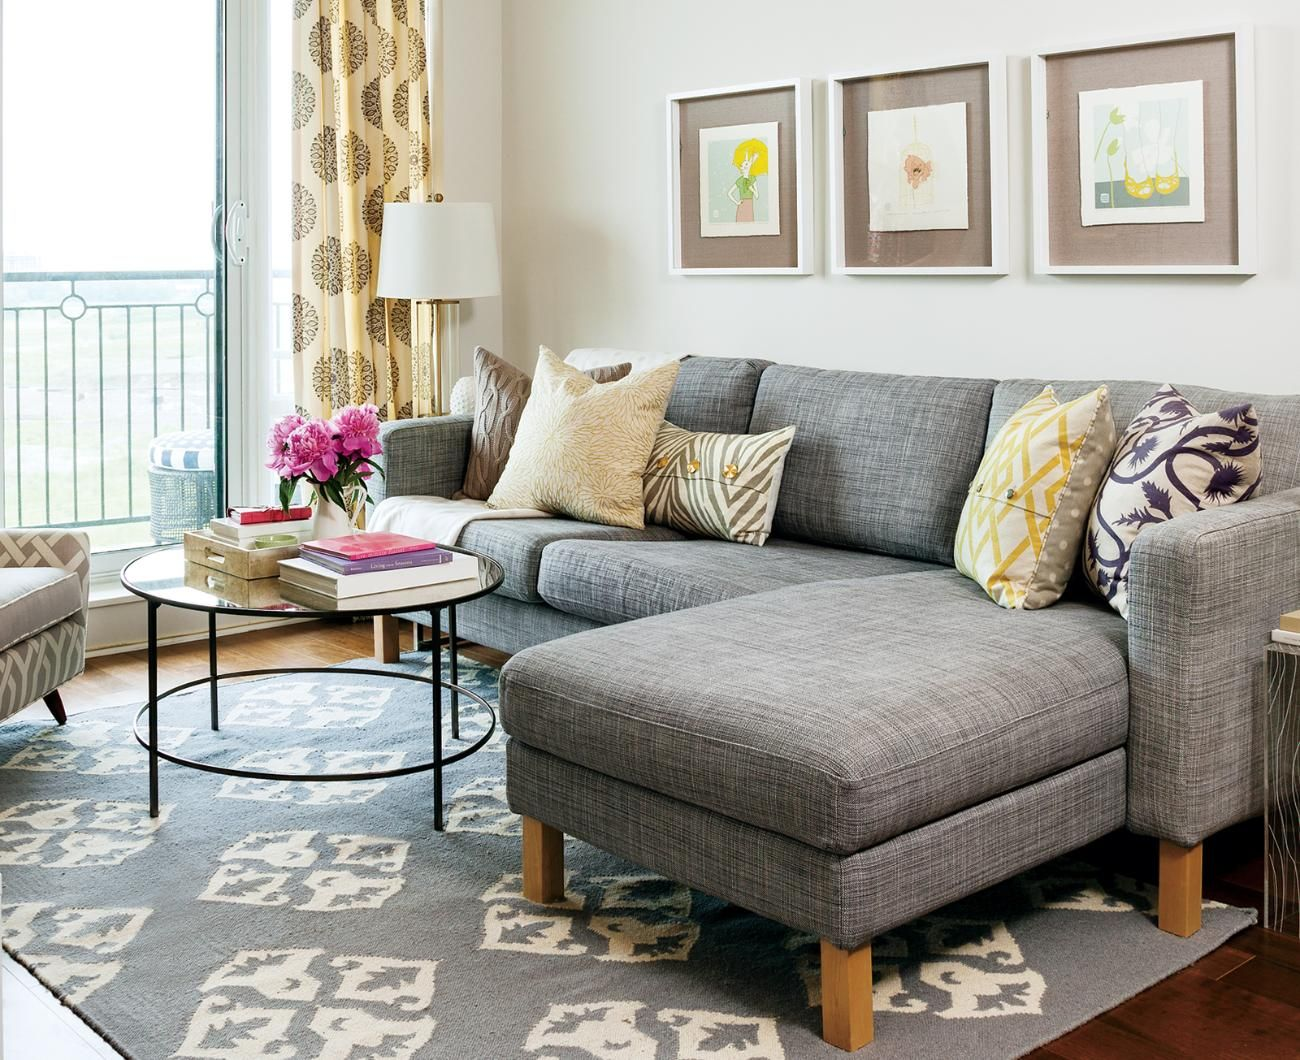 Awesome Gold And Grey Living Roomu2014Gold And Grey Combine Beautifully In The Airy Living  Room.